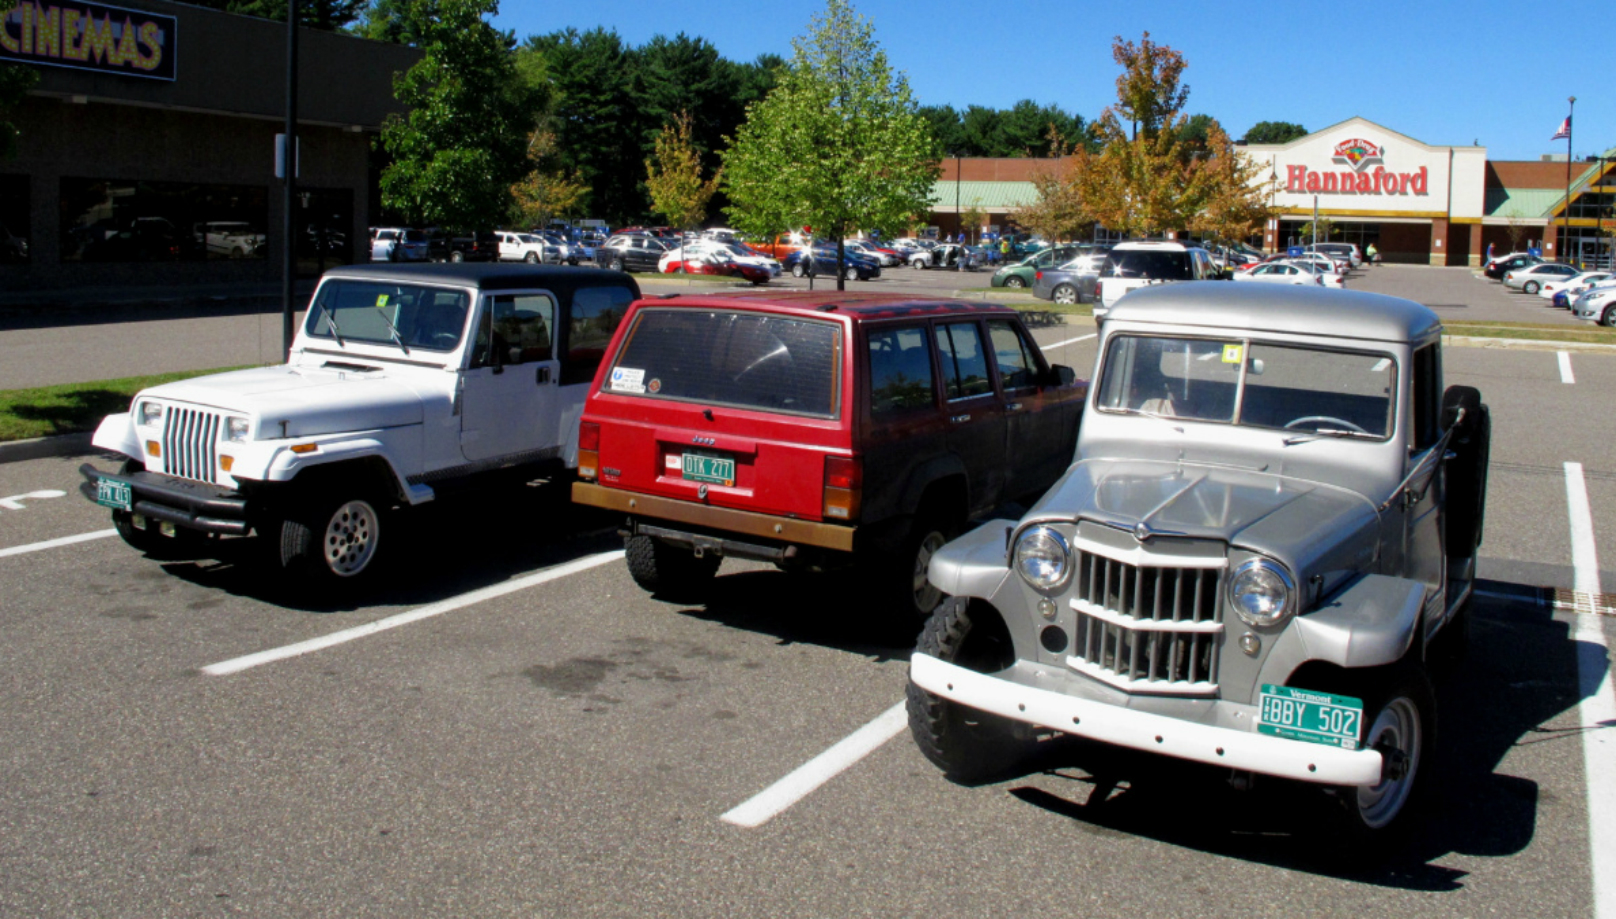 1-jeeps-in-lot